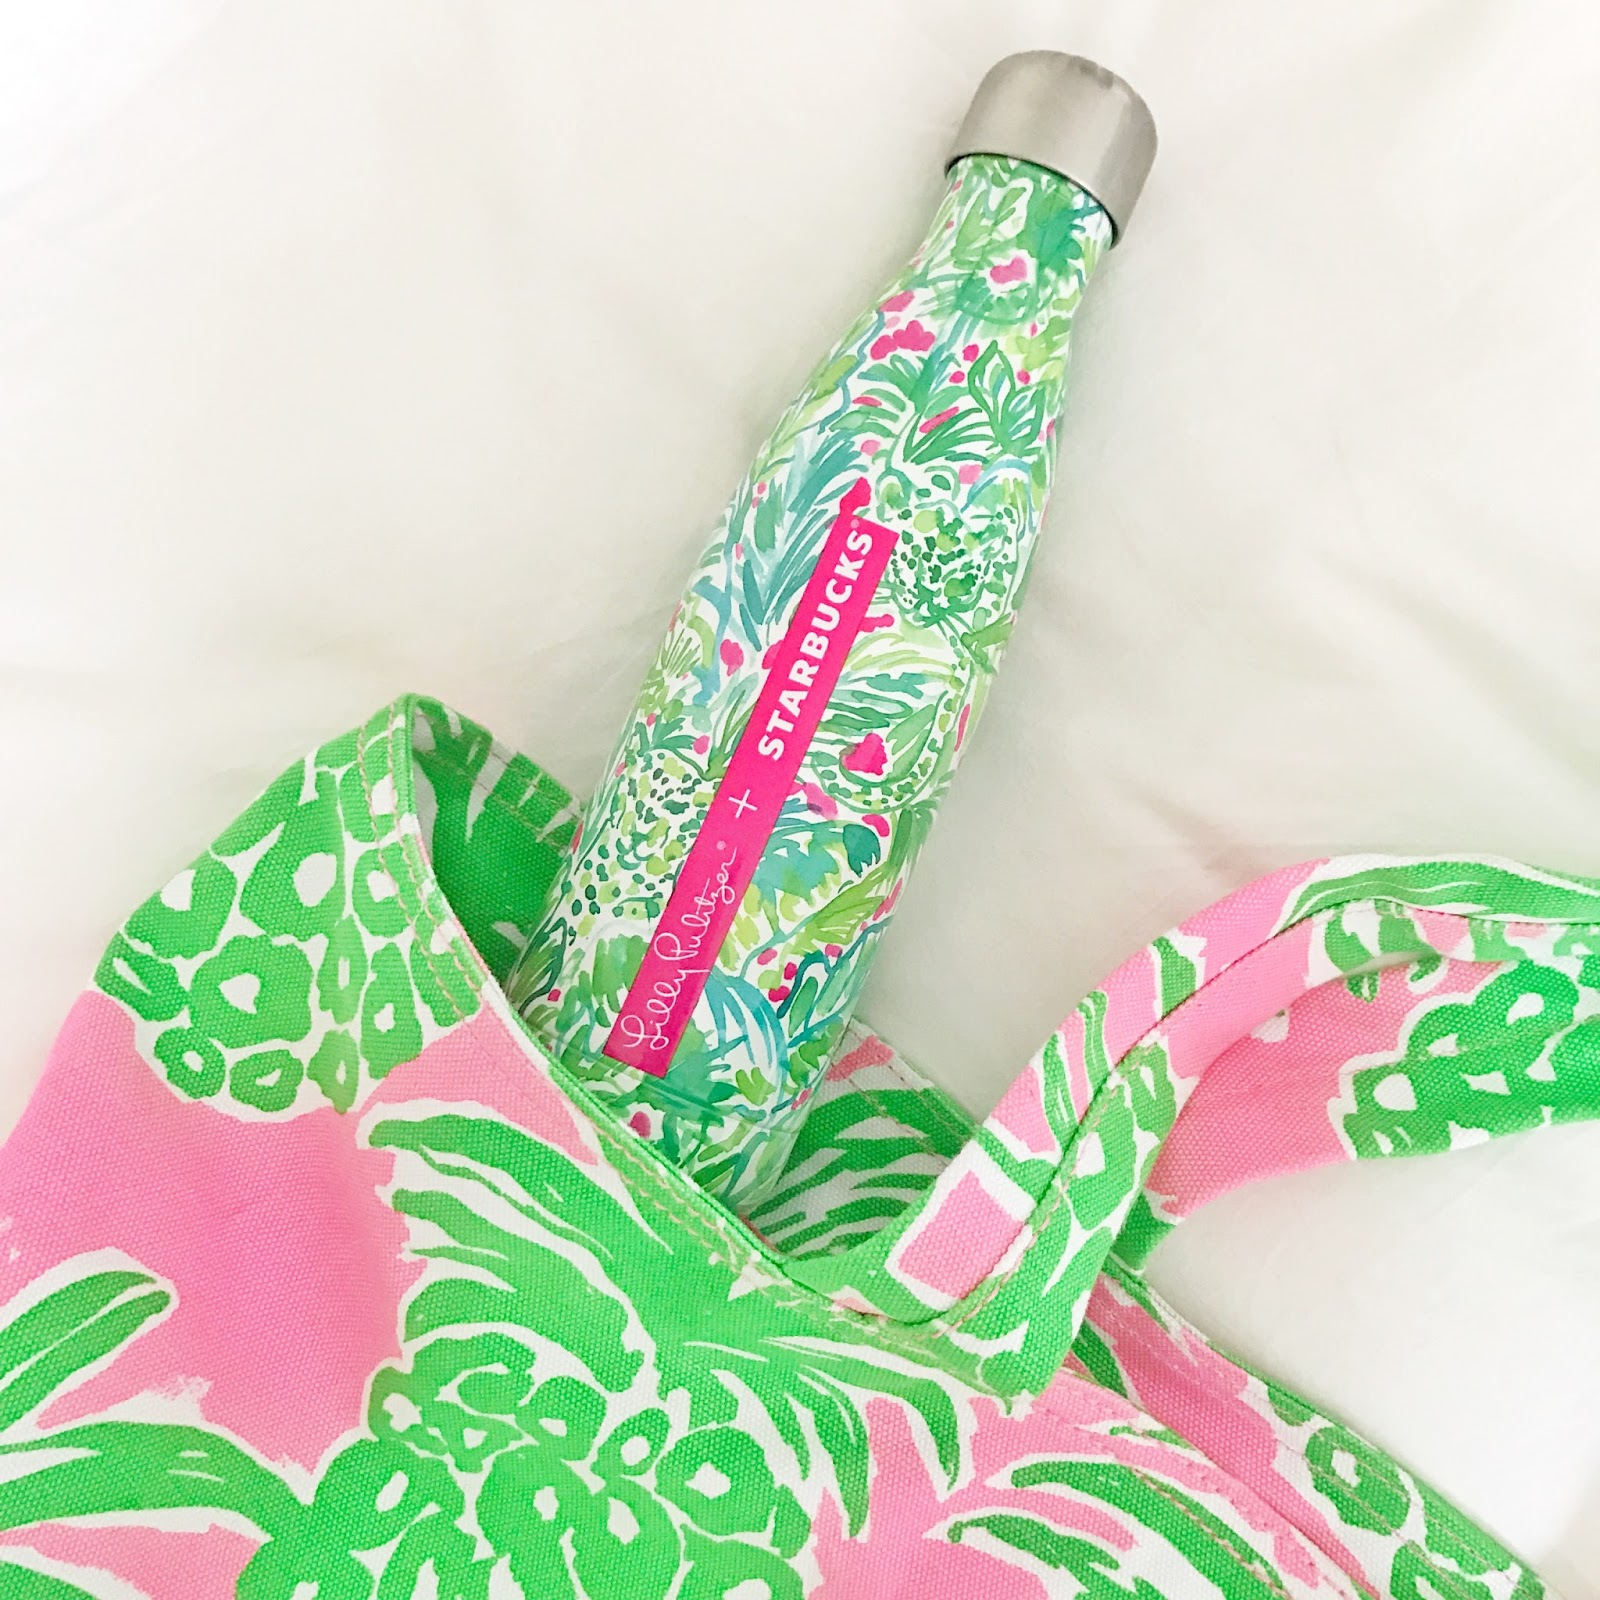 Summer Wind Lilly Pulitzer After Party Sale January 2019